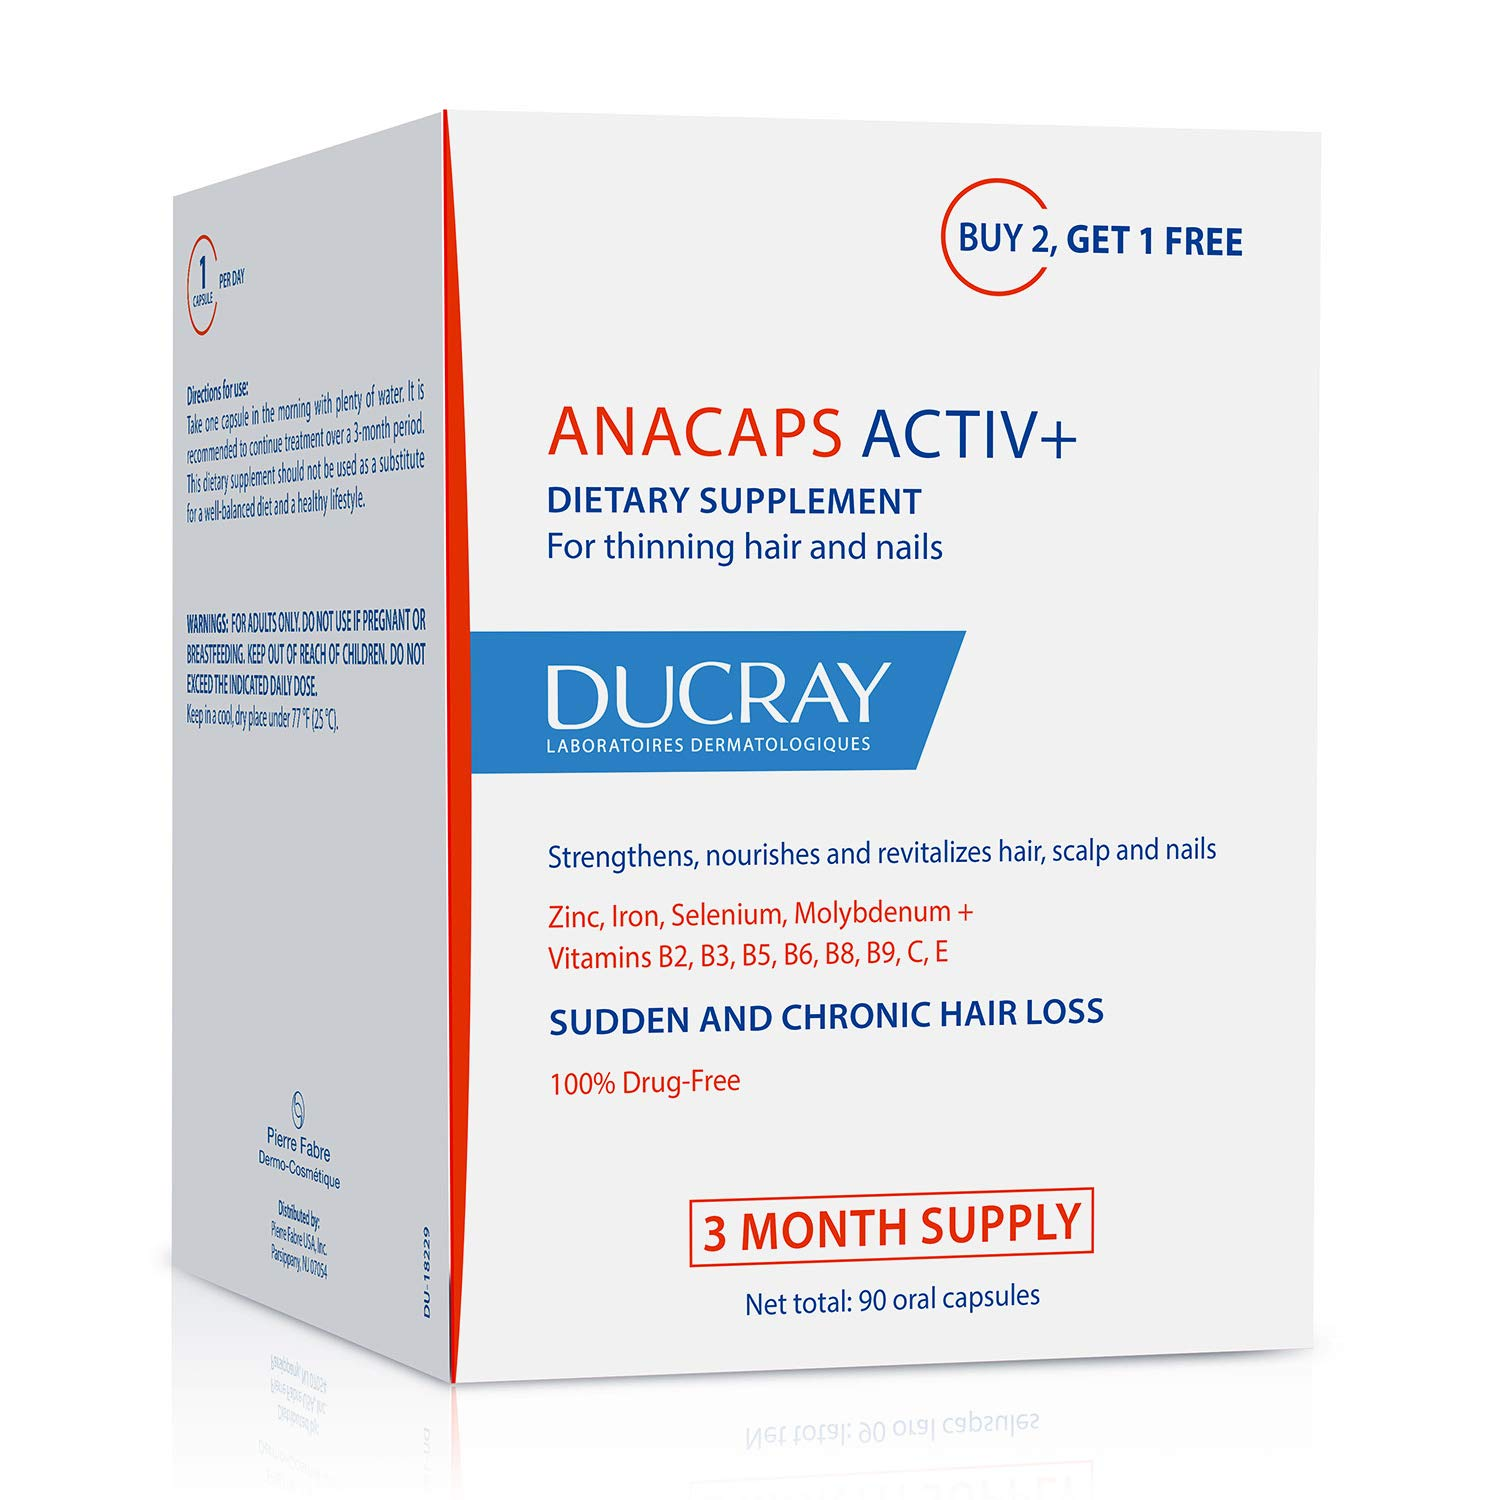 Ducray Anacaps ACTIV+, Dietary Supplement for Healthy Hair & Nails, Biotin, Gluten-, Soy-Free, 30 Day Supply